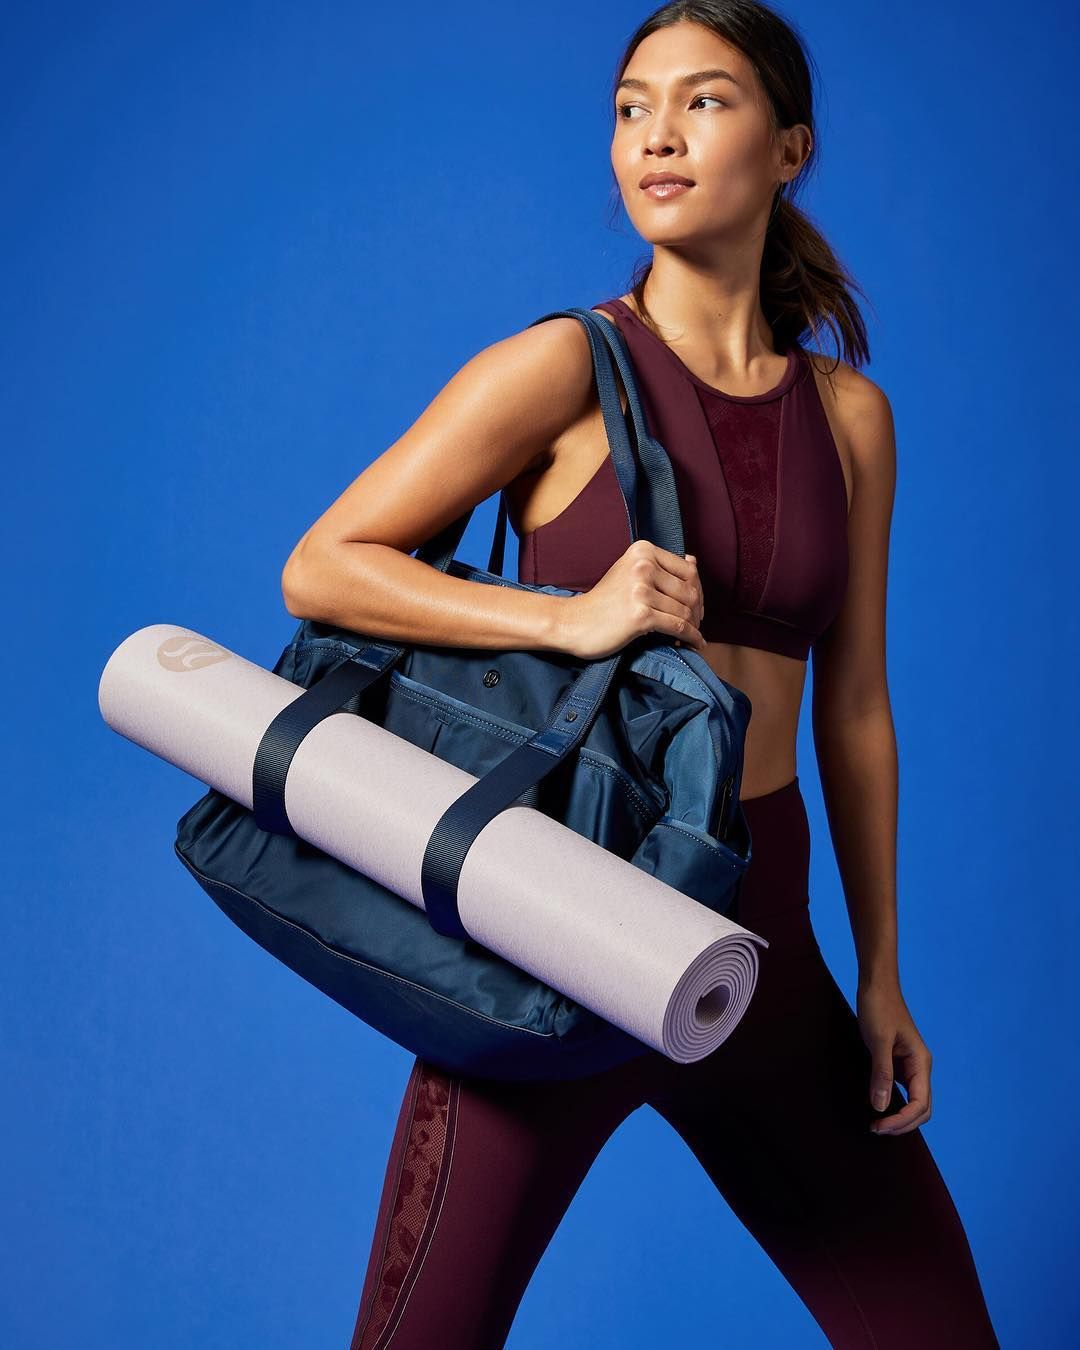 Gym Bag Essentials: Everything You Need To Crush Your Next Workout